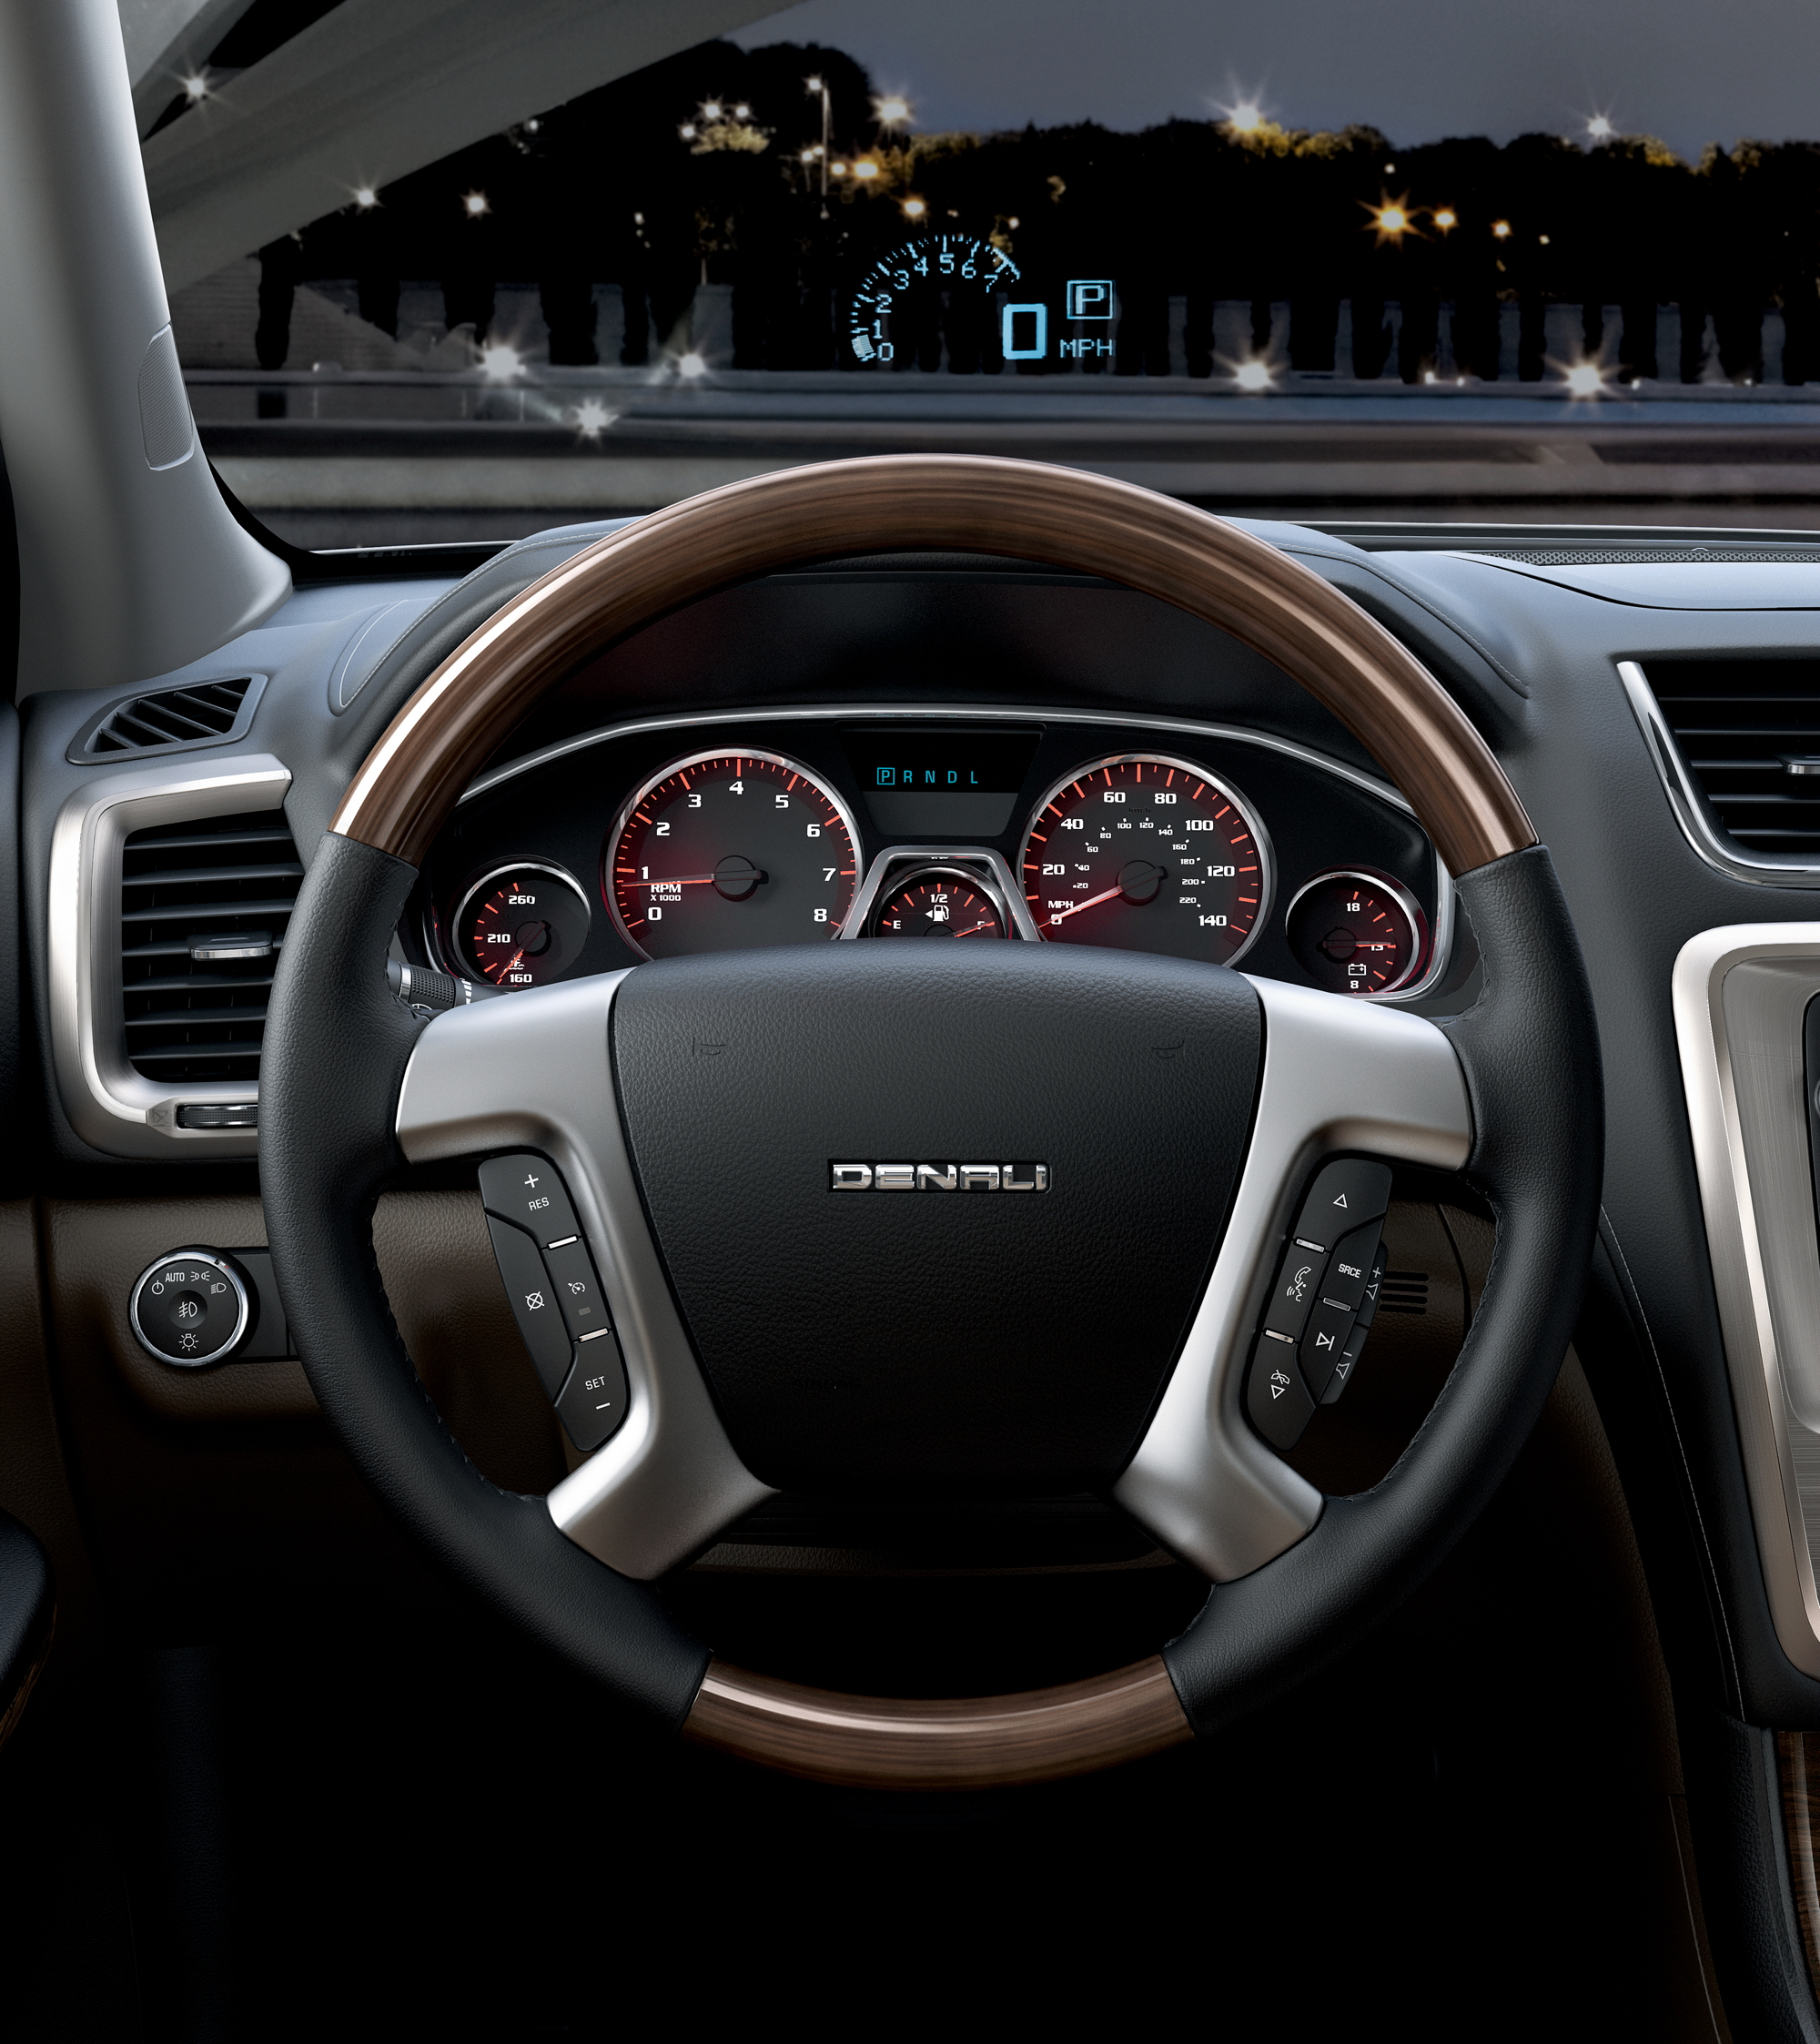 acadia news gmc pri reviews top prices cars announced arcadia speed and